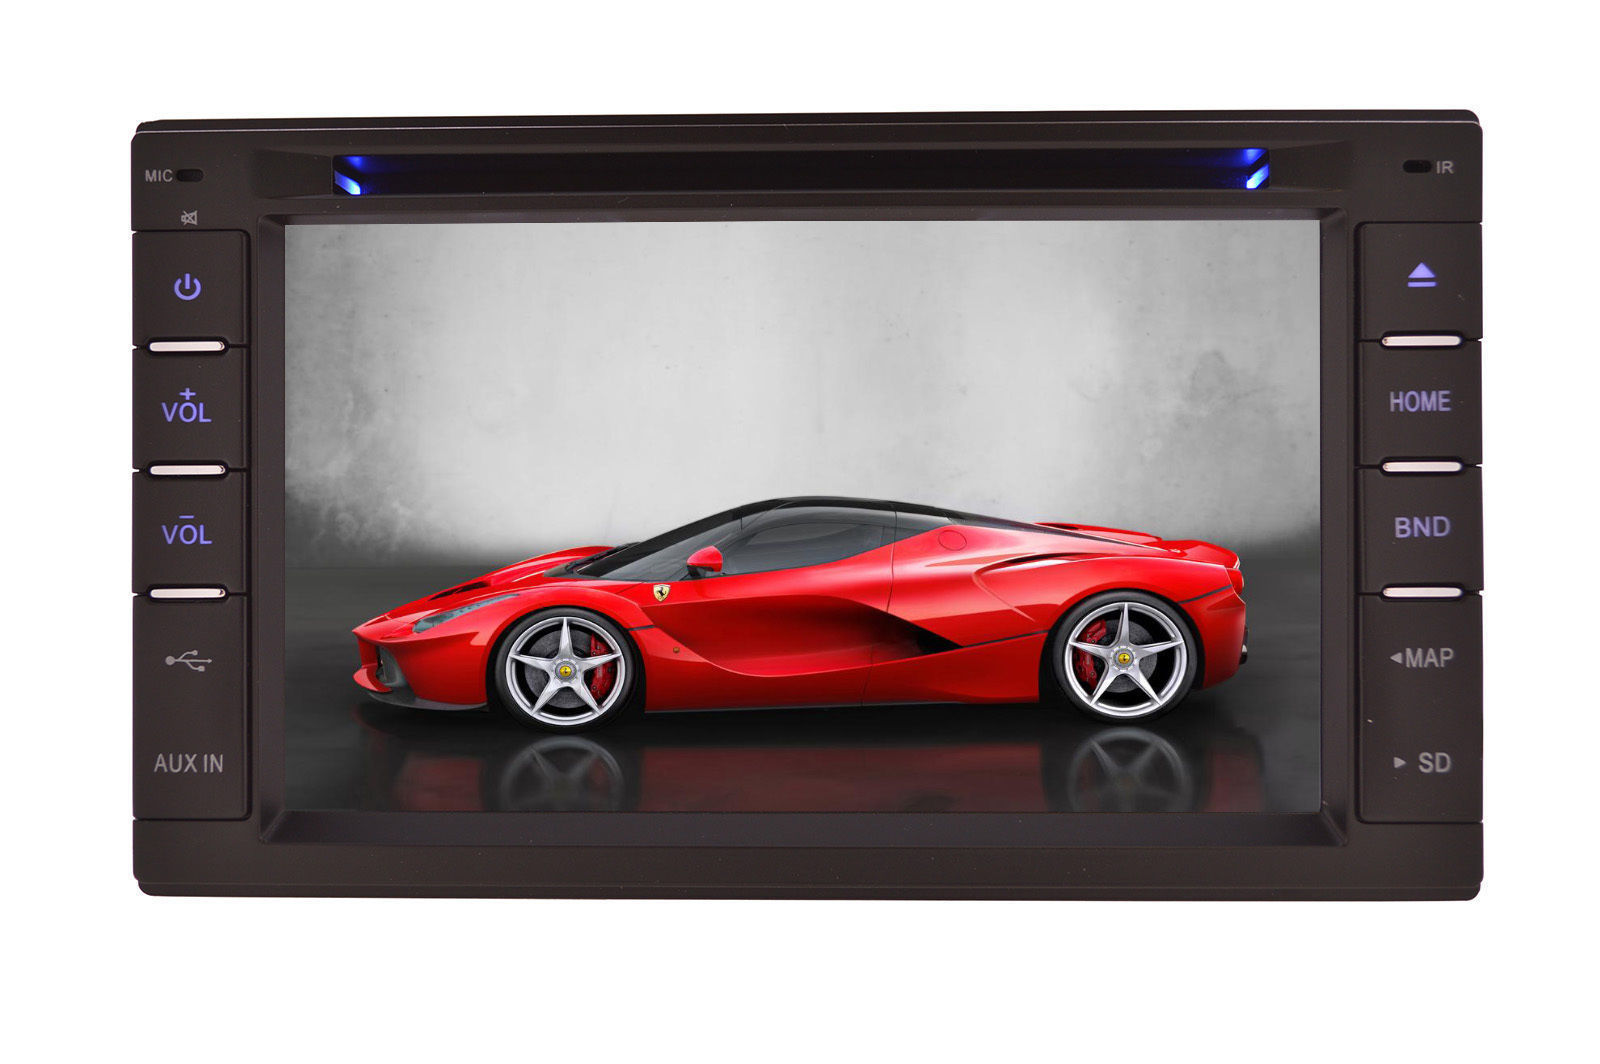 IN DASH DOUBLE DIN MULTIMEDIA NAVIGATION RADIO SYSTEM WITH BLUETOOTH GPS CD DVD image 11